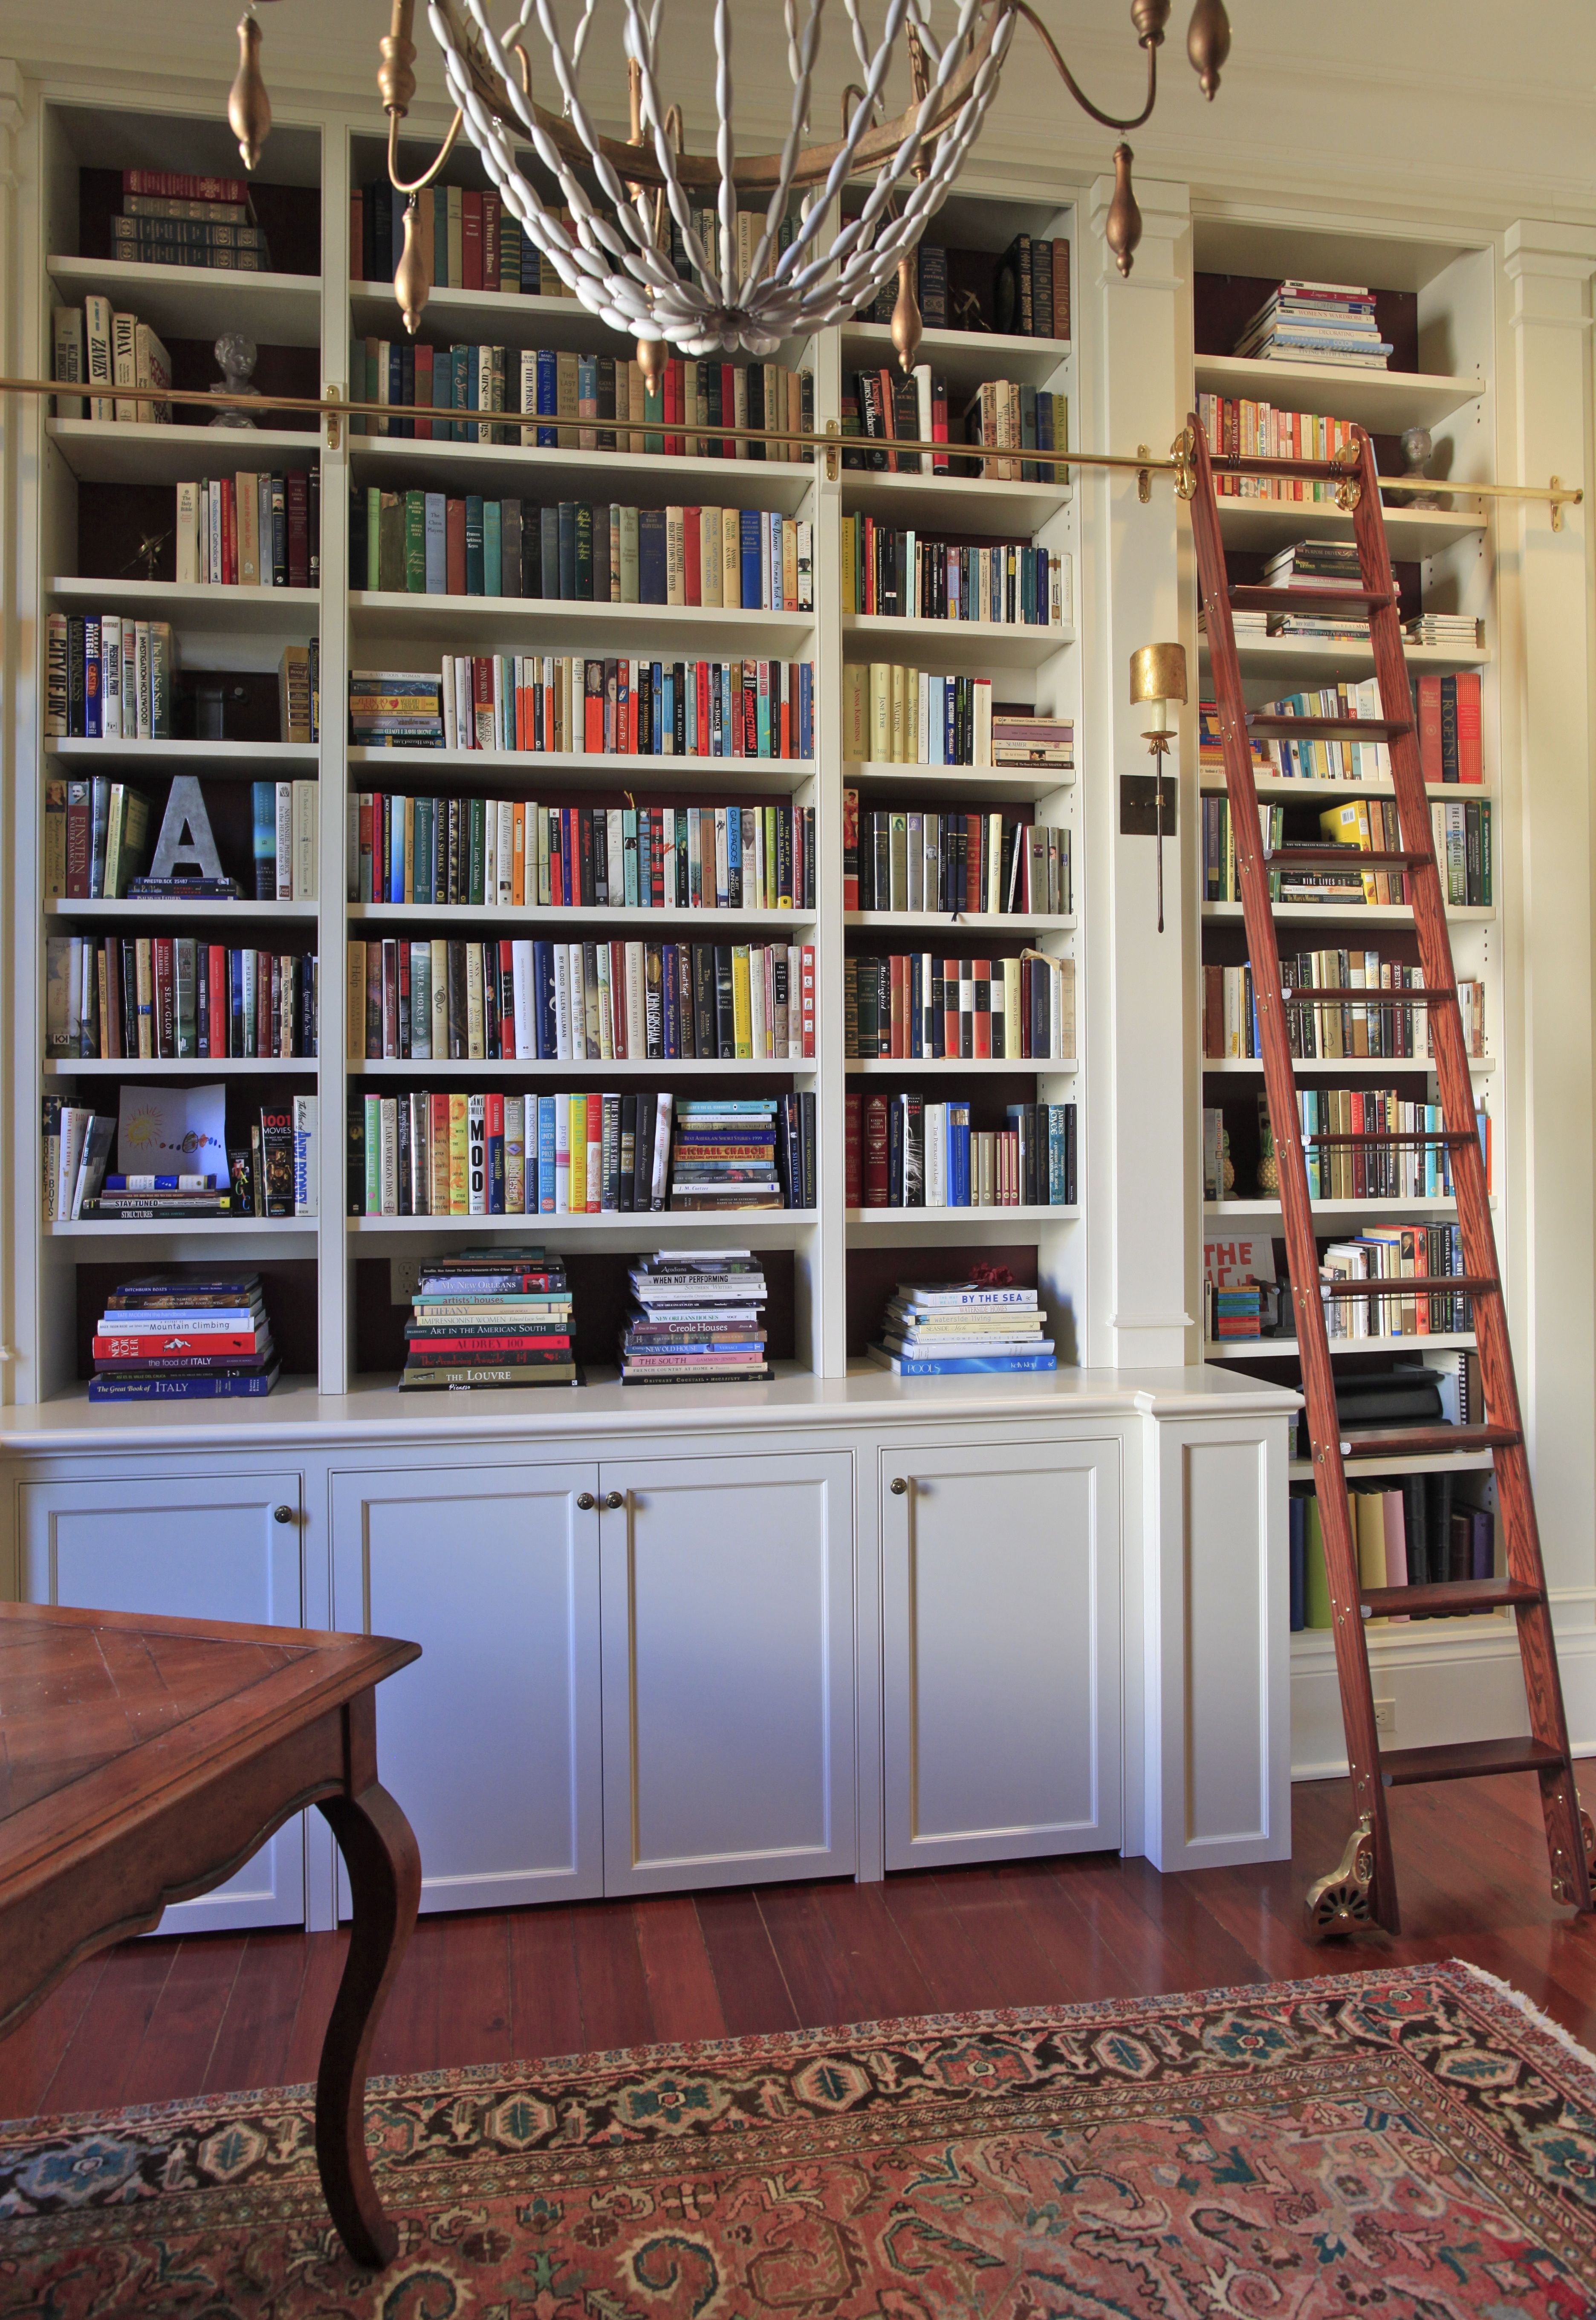 Beautiful Custom Built In Bookcase For Home Library Column Accents With Tall Base Moulding And Sliding Ladder Built In Furniture Home Built In Bookcase